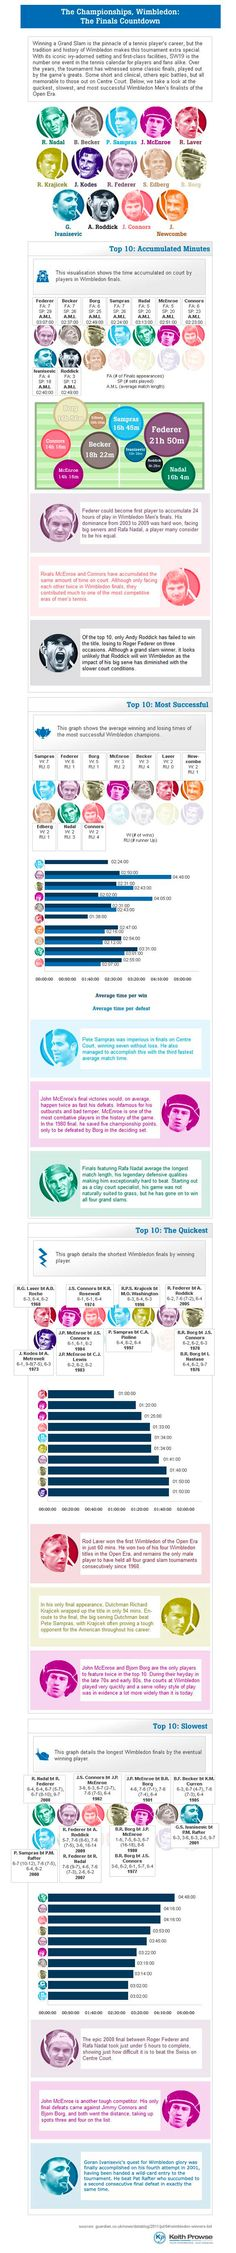 The Wimbledon Champions History-infographic Wimbledon Final, Wimbledon Tennis, Wimbledon 2013, Wimbledon Champions, The Final Countdown, Tennis Tournaments, Tennis Tips, Andy Murray, Sports Medicine